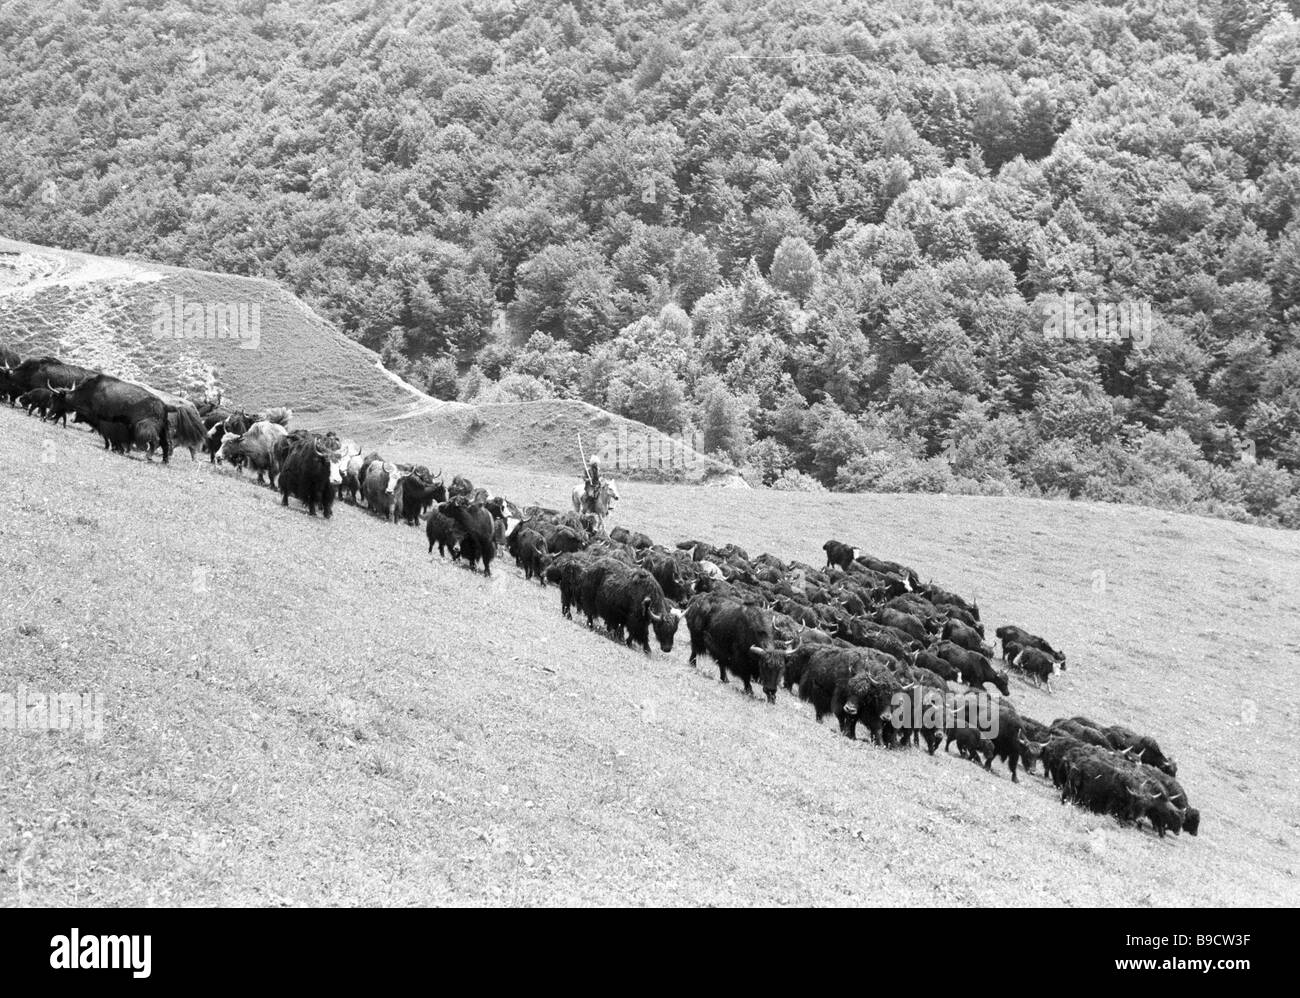 Pastureland in the mountains - Stock Image